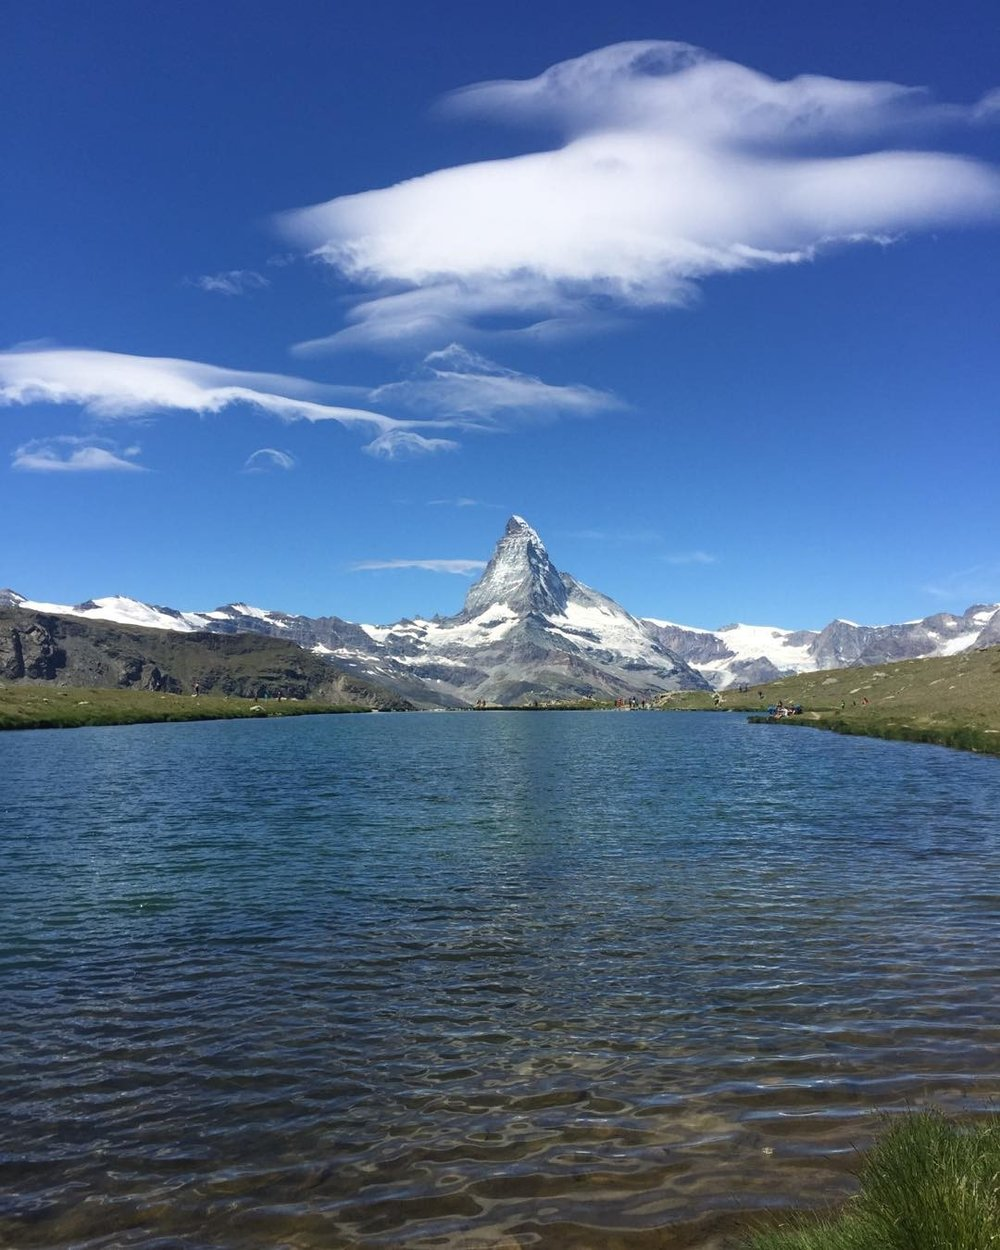 The Matterhorn                                                                                                                                                                                                                                      Photo By: Lily Carpenter-Israel